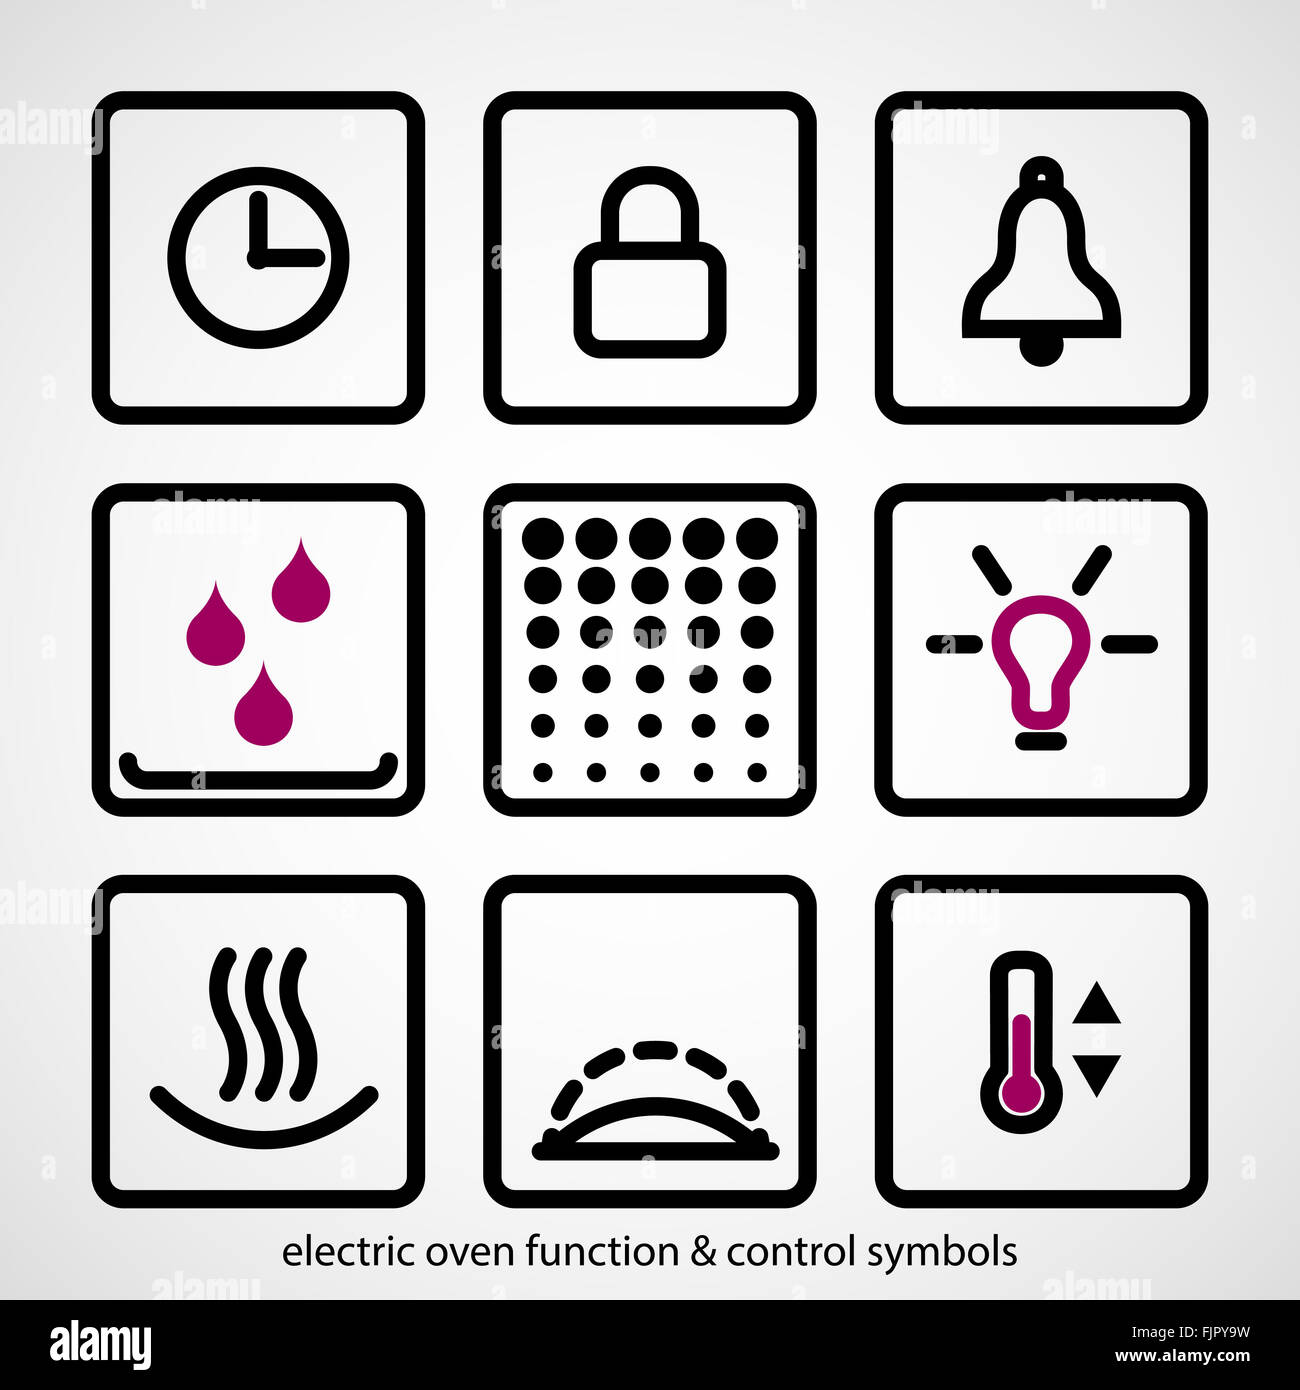 electric oven function control symbols outline icon collection stock photo 97620037 alamy. Black Bedroom Furniture Sets. Home Design Ideas